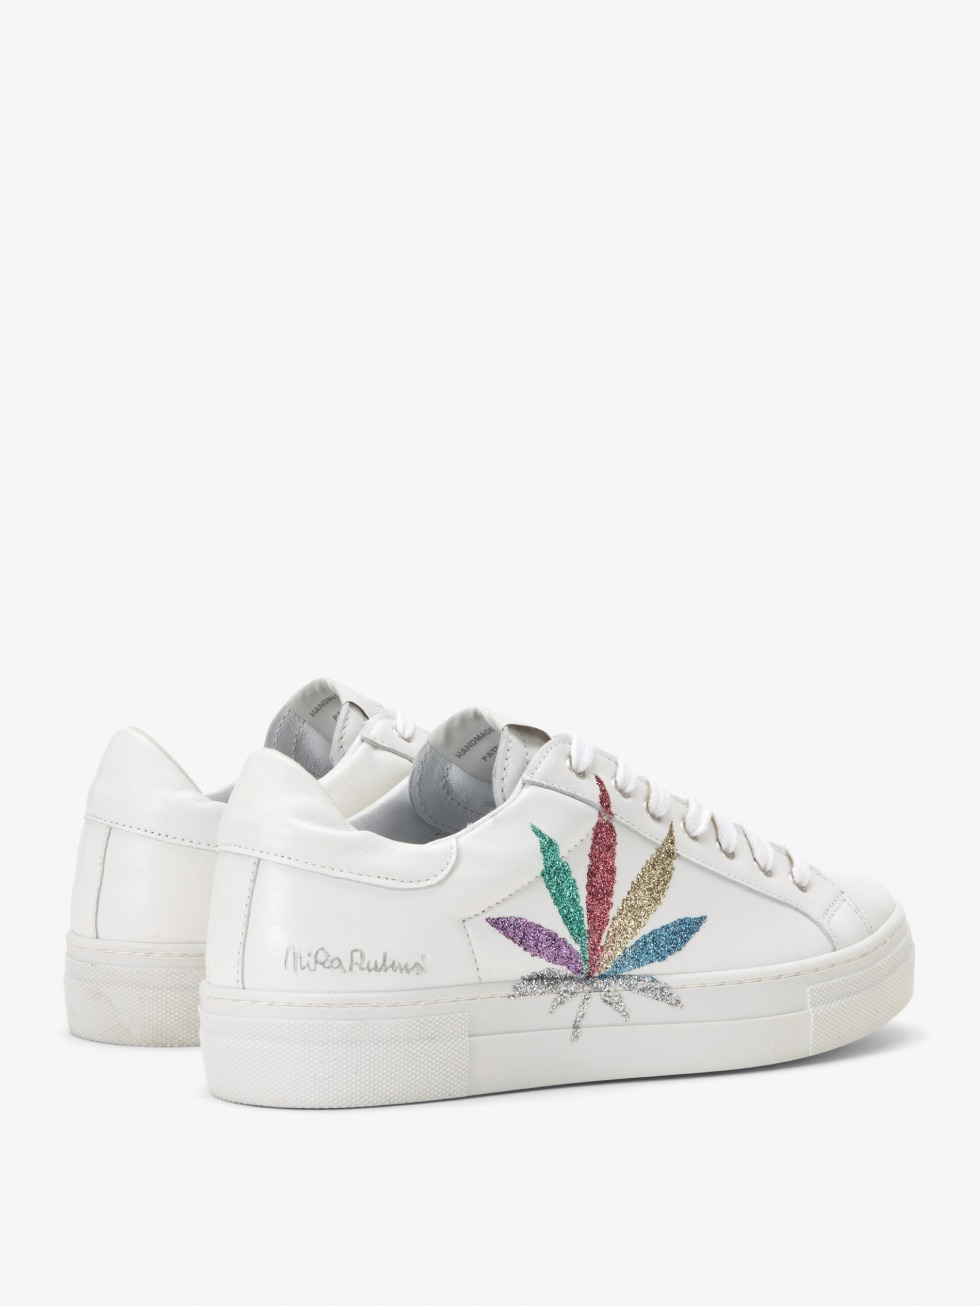 Martini White Sneakers - Multicolor Glitter Leaf